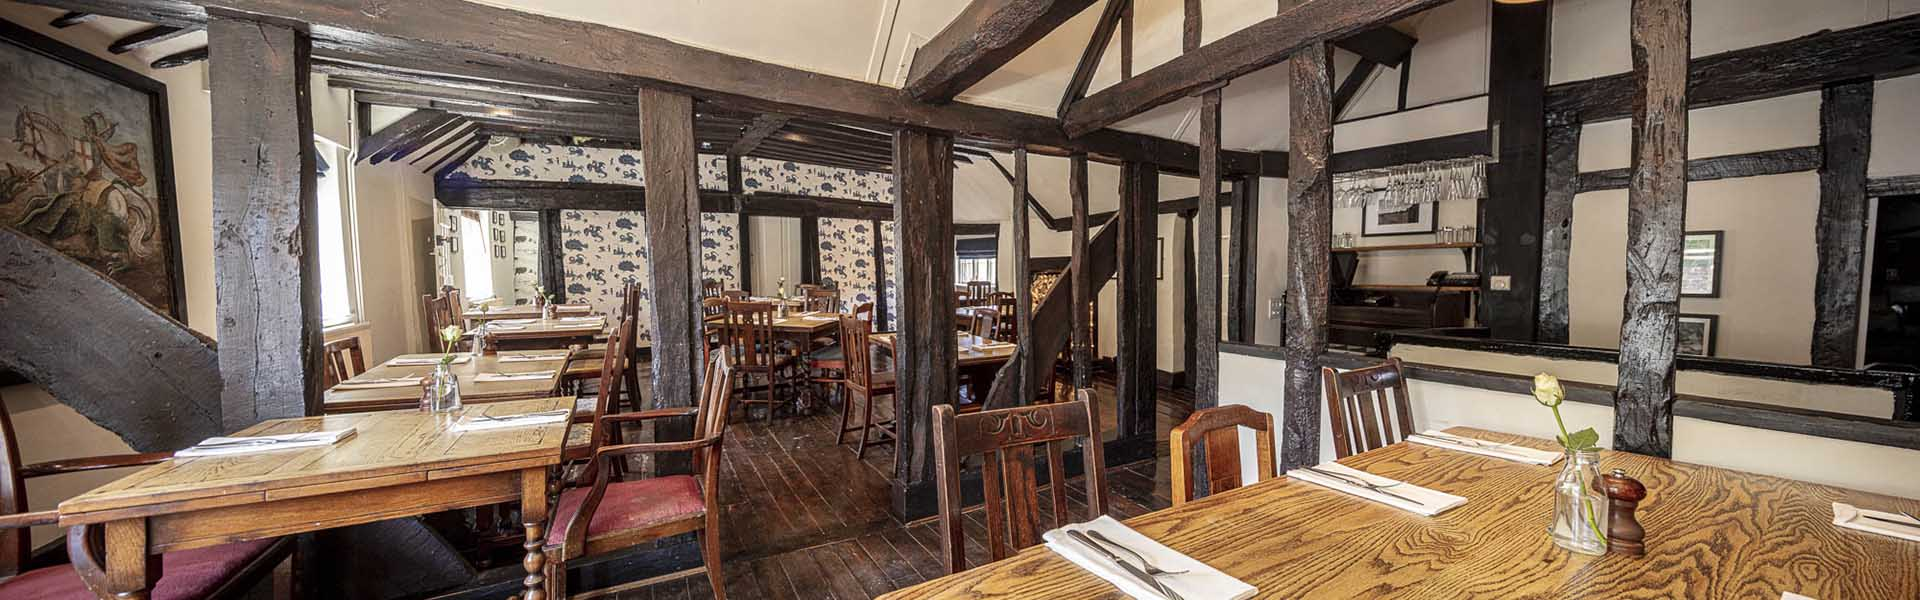 Dining Room at the George & Dragon, Chipstead